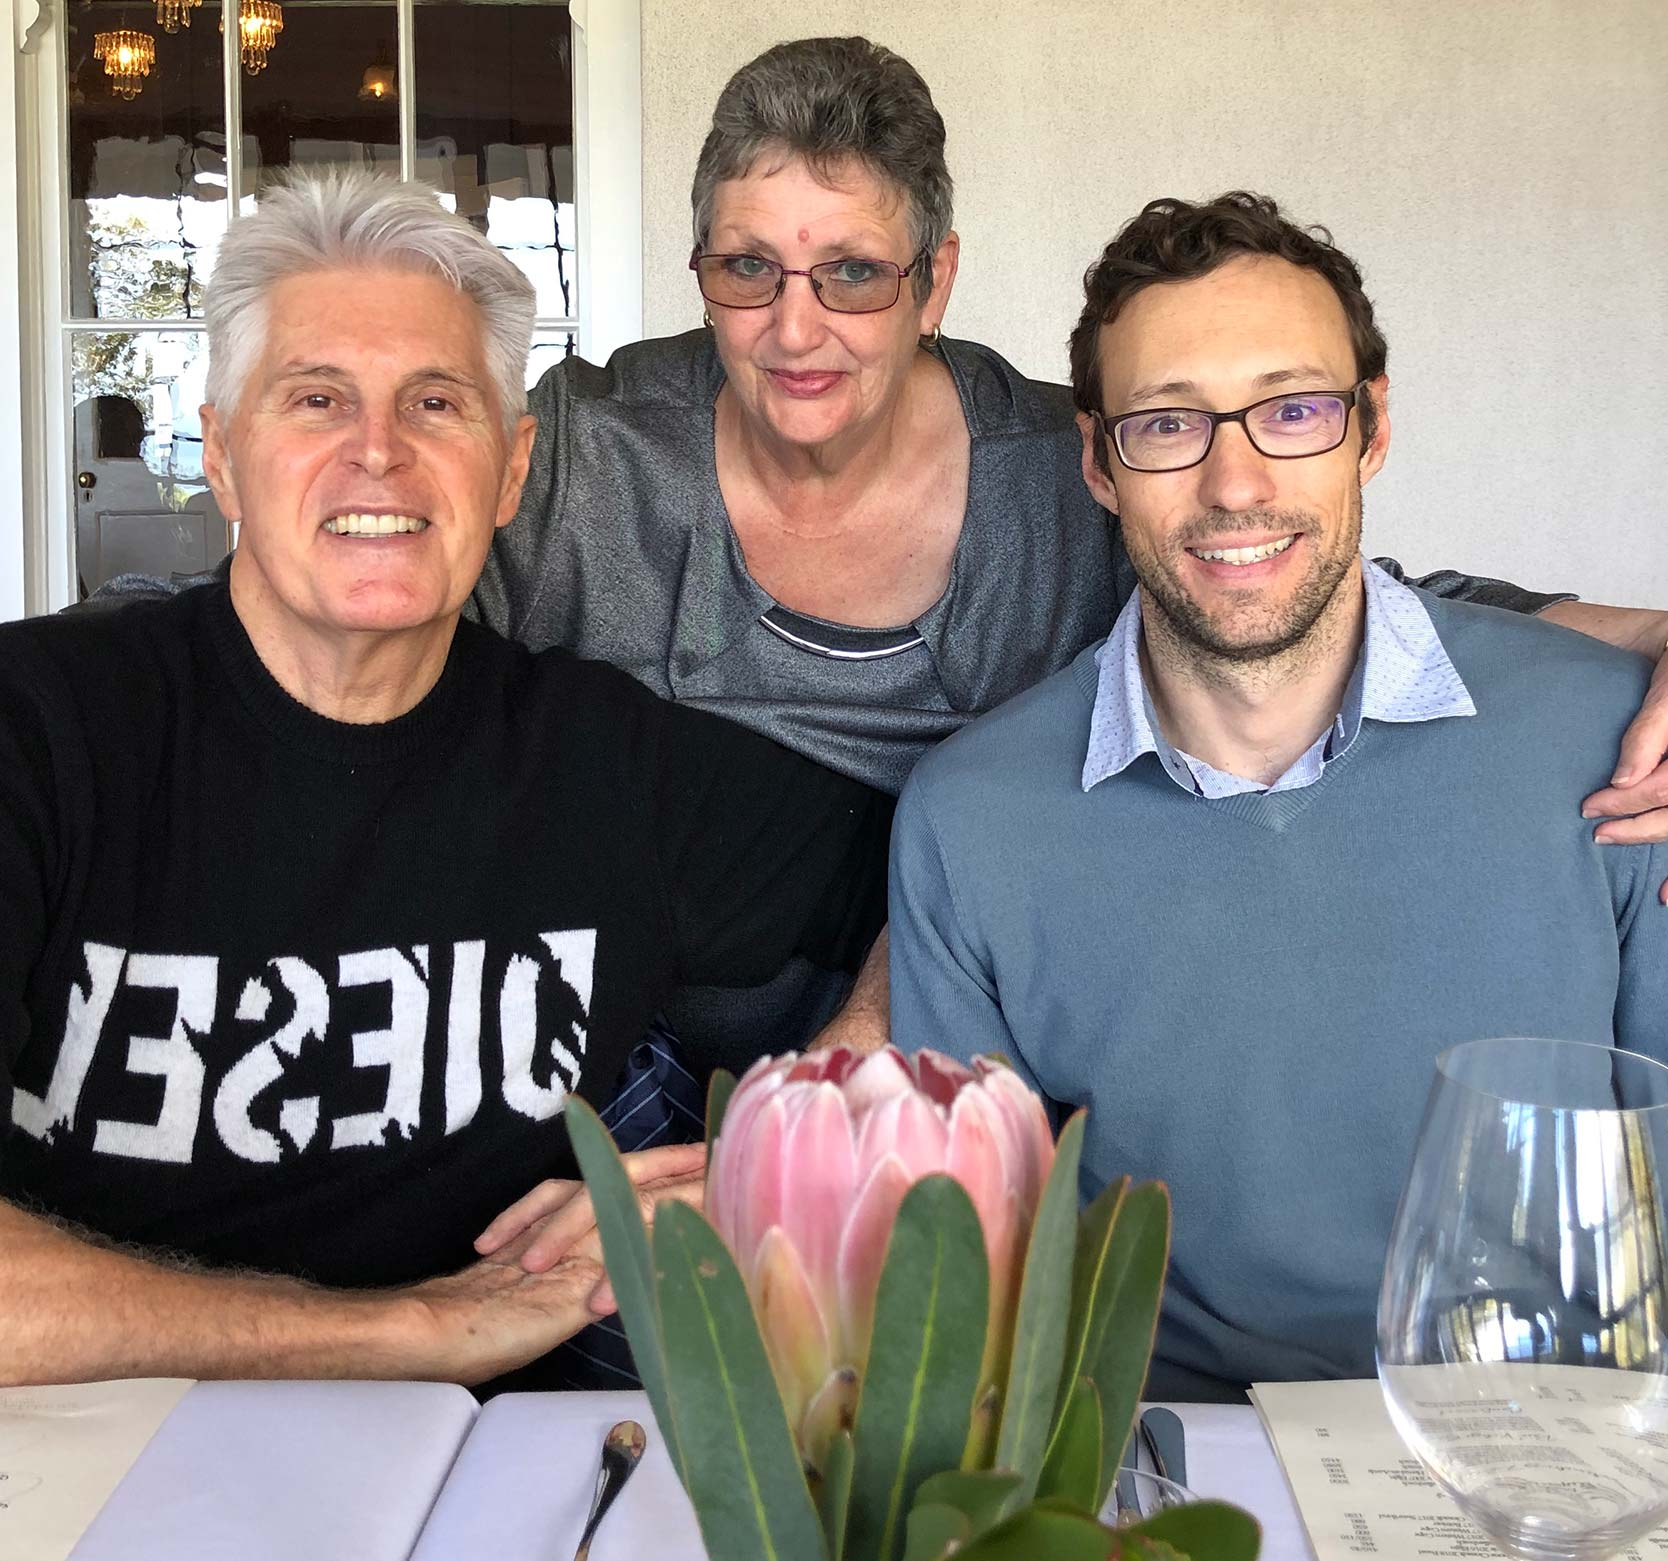 Celebrating Johan's birthday at Salsify in Camps Bay, 21.05.2019.